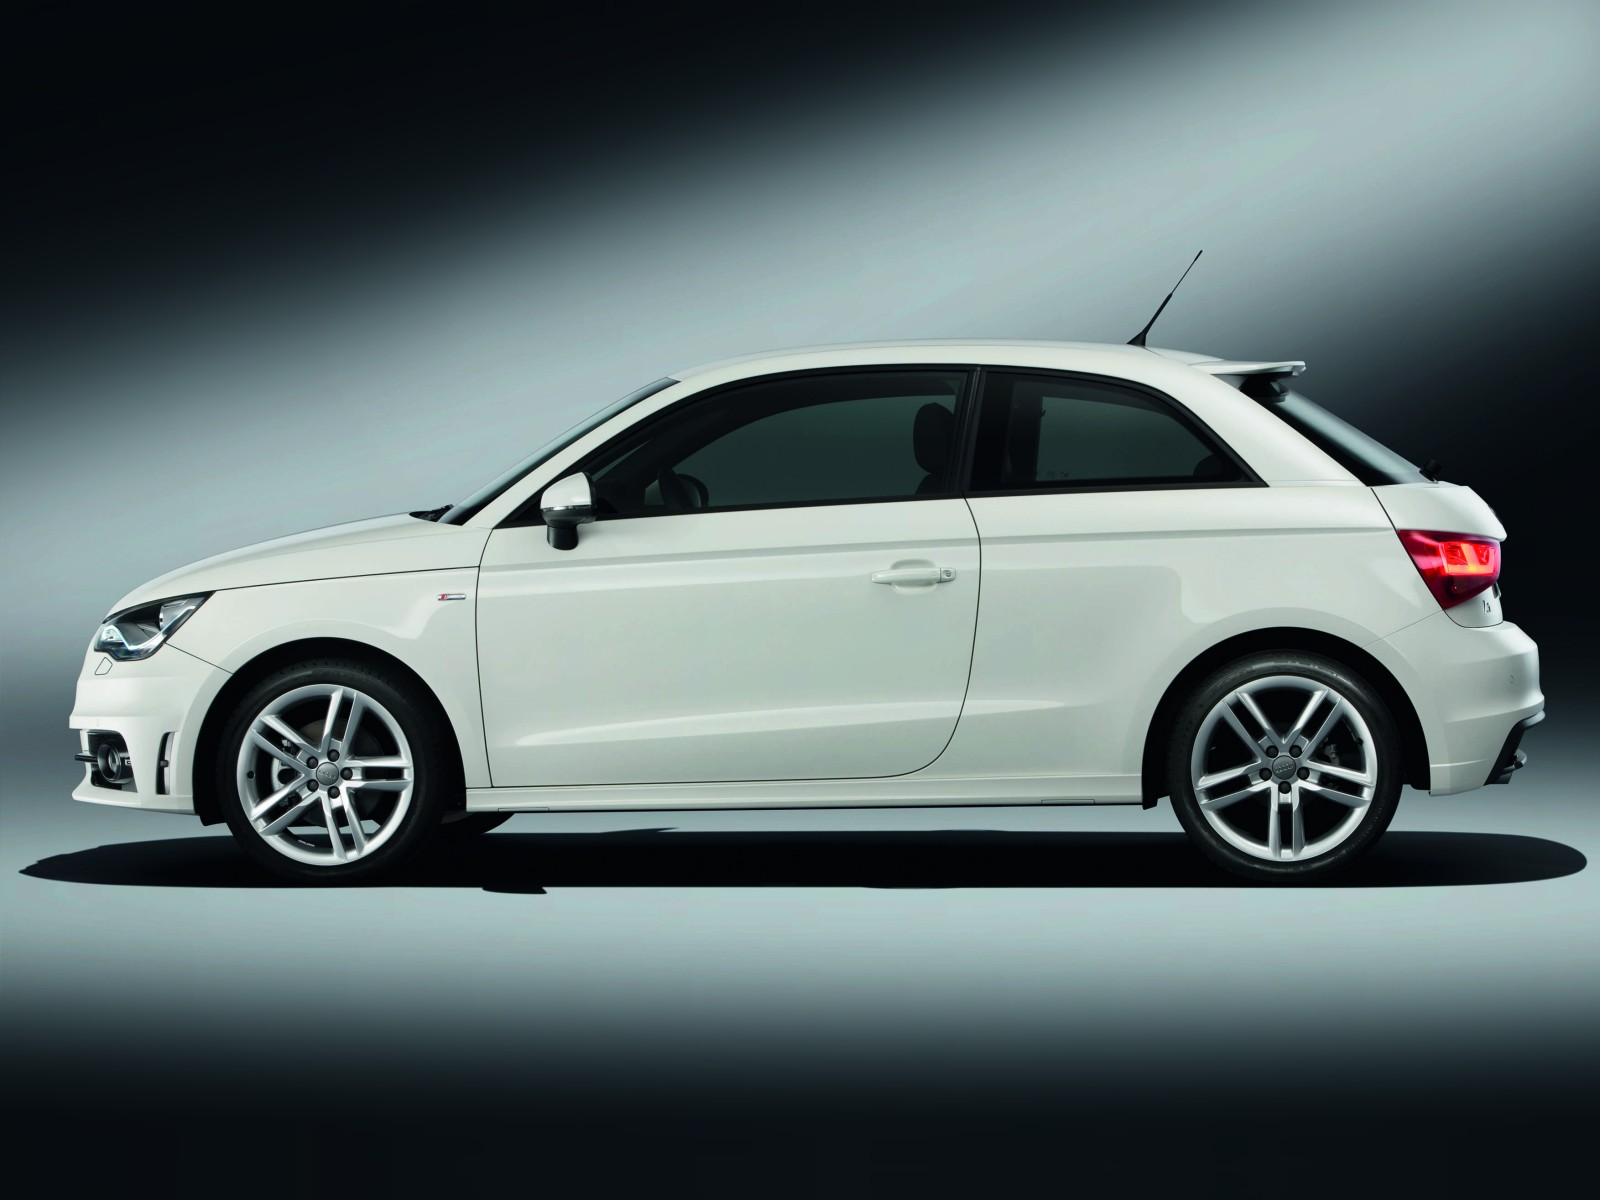 2010 audi a1 1 4 tfsi s line wallpapers pictures specifications interiors and exteriors images. Black Bedroom Furniture Sets. Home Design Ideas